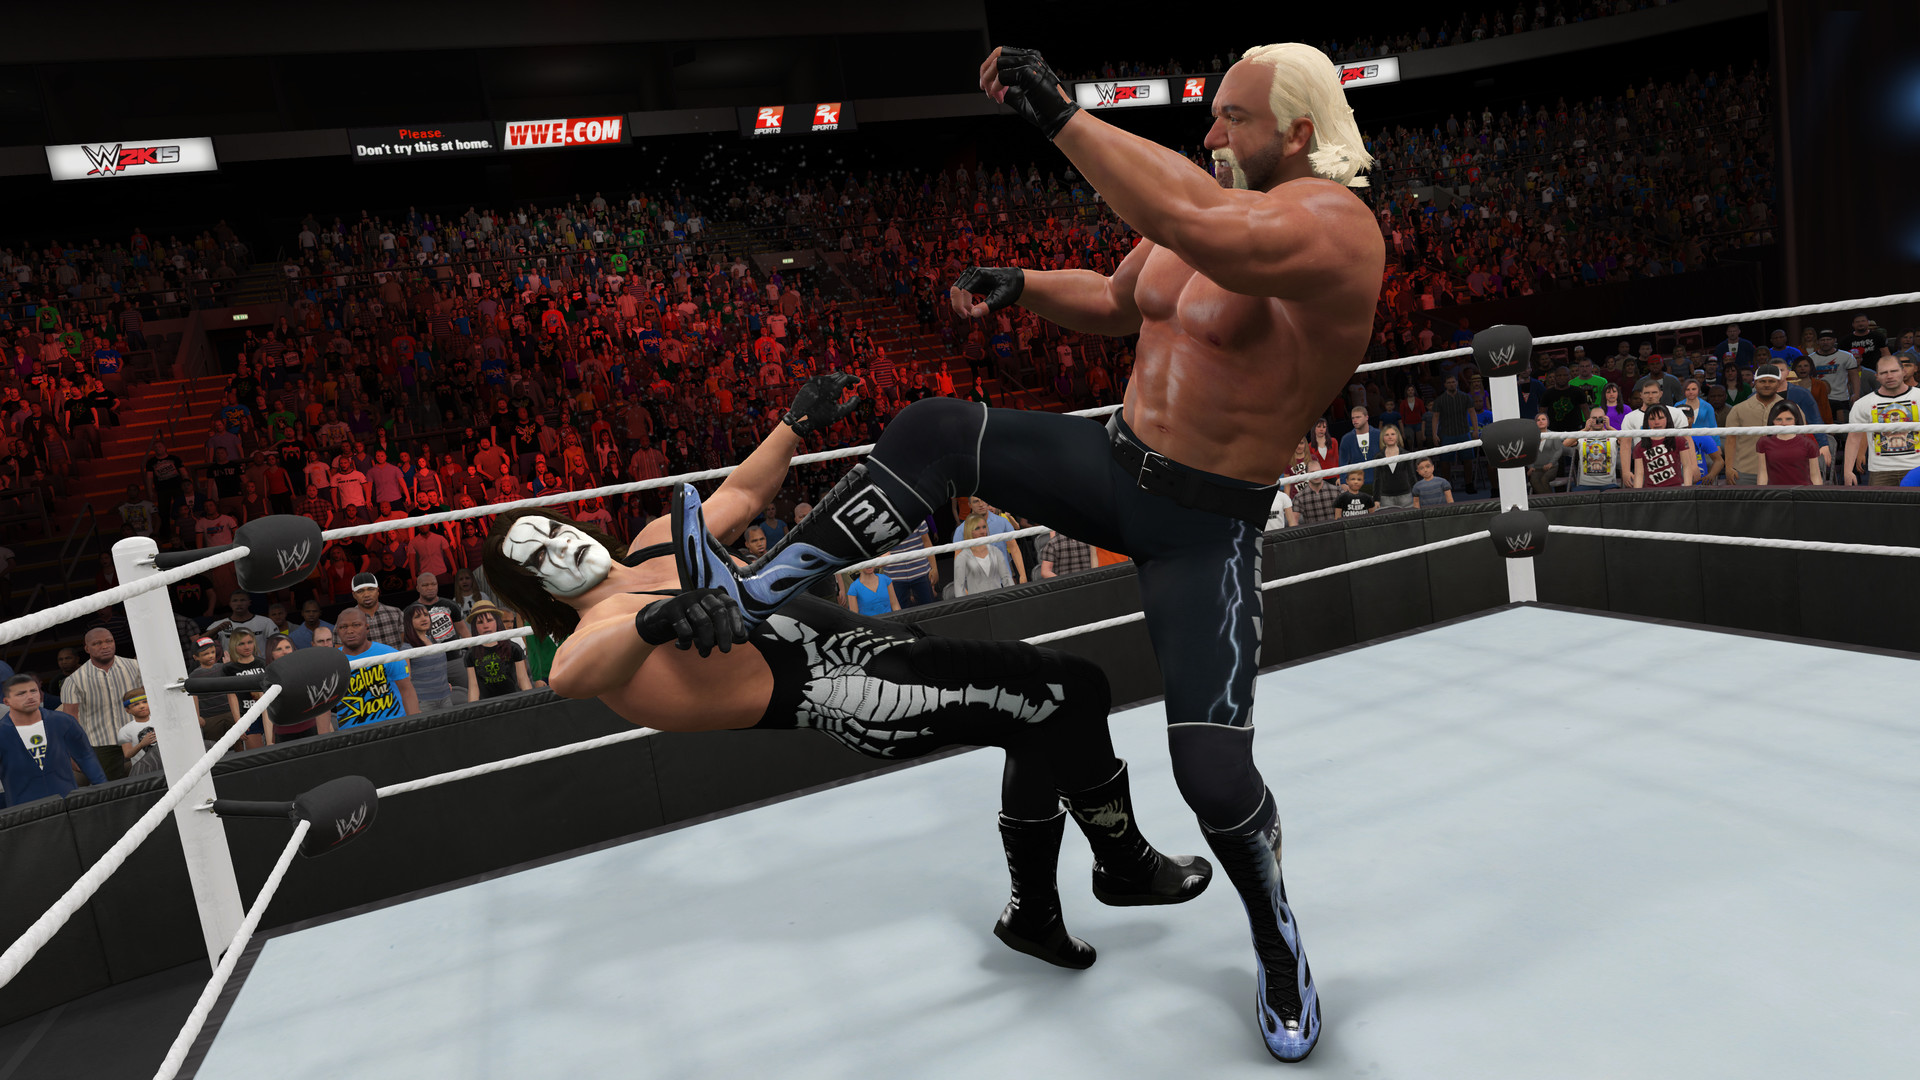 wwe 2015 full game free download for pc